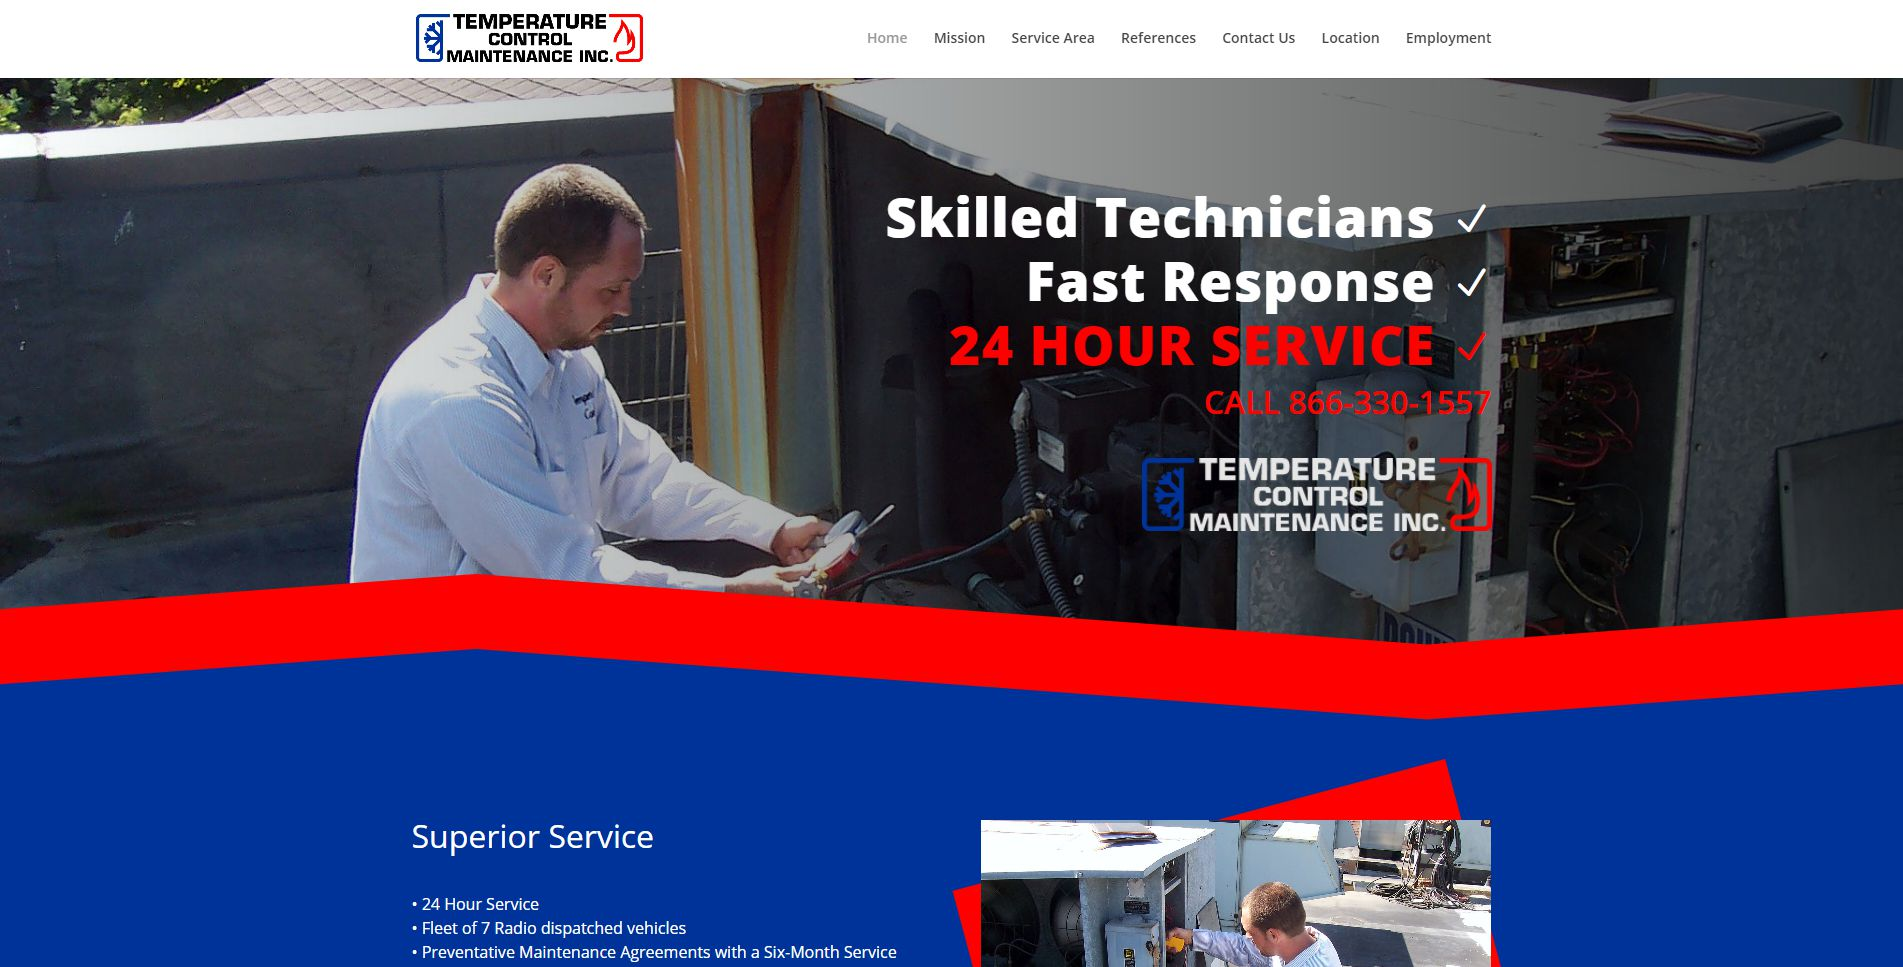 Screen capture of the Temperature Control Maintenance home page.